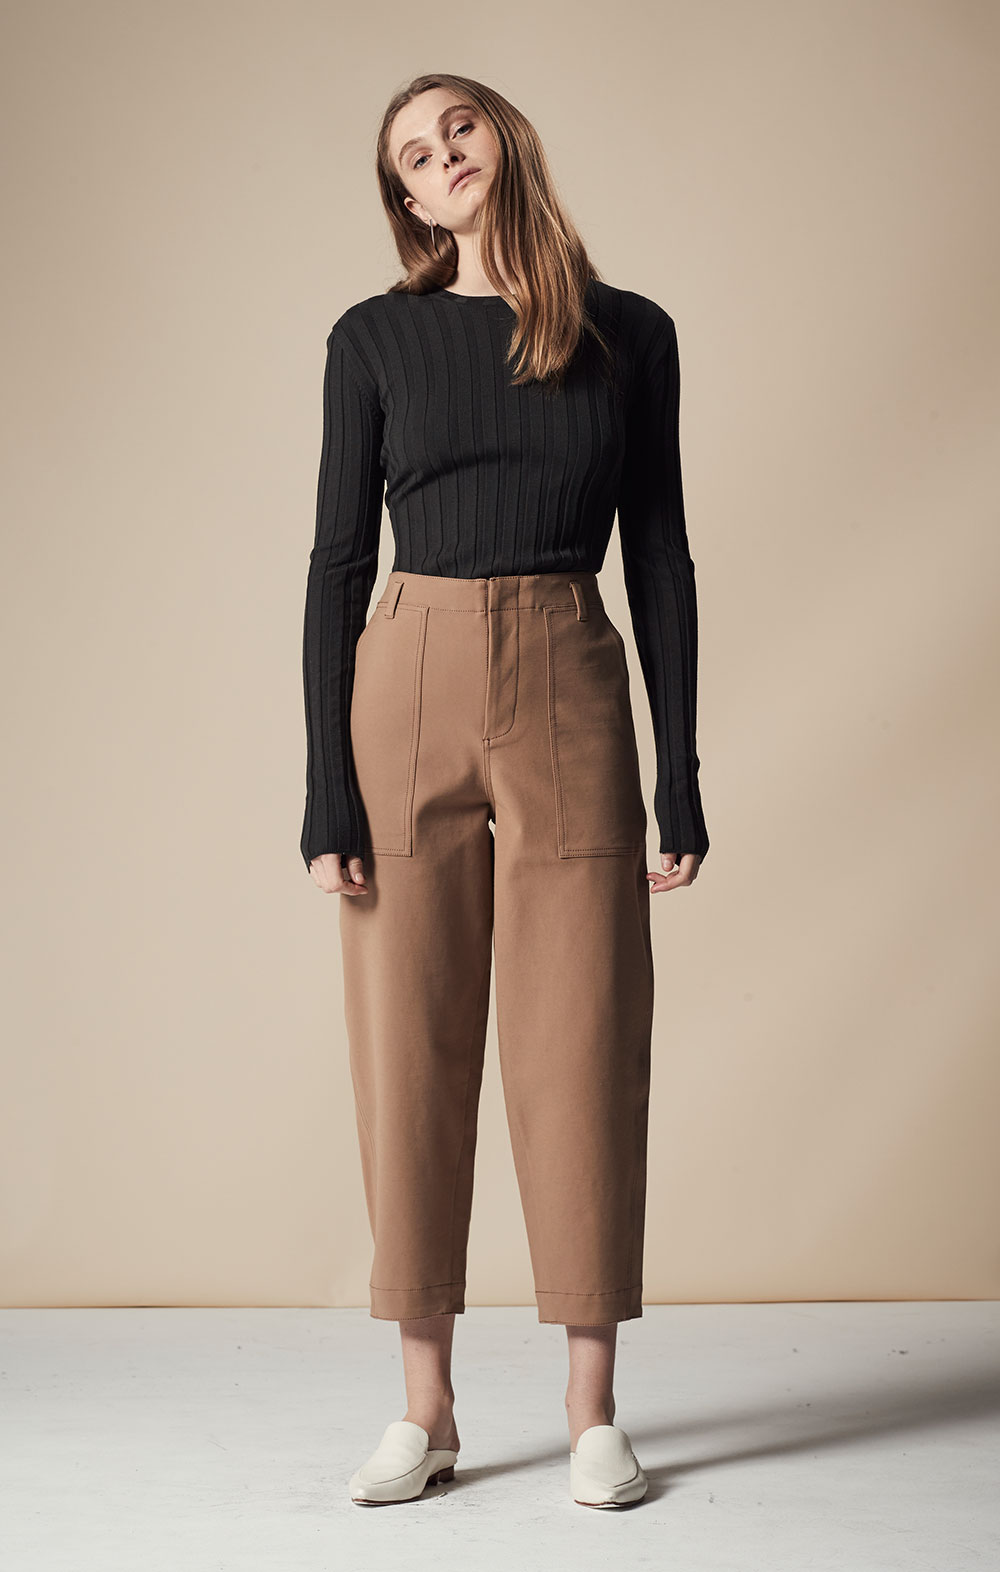 Long Sleeve Ribbed Pullover FBK012-DGR Pocket Detail Cropped Pant FBP030-BEG